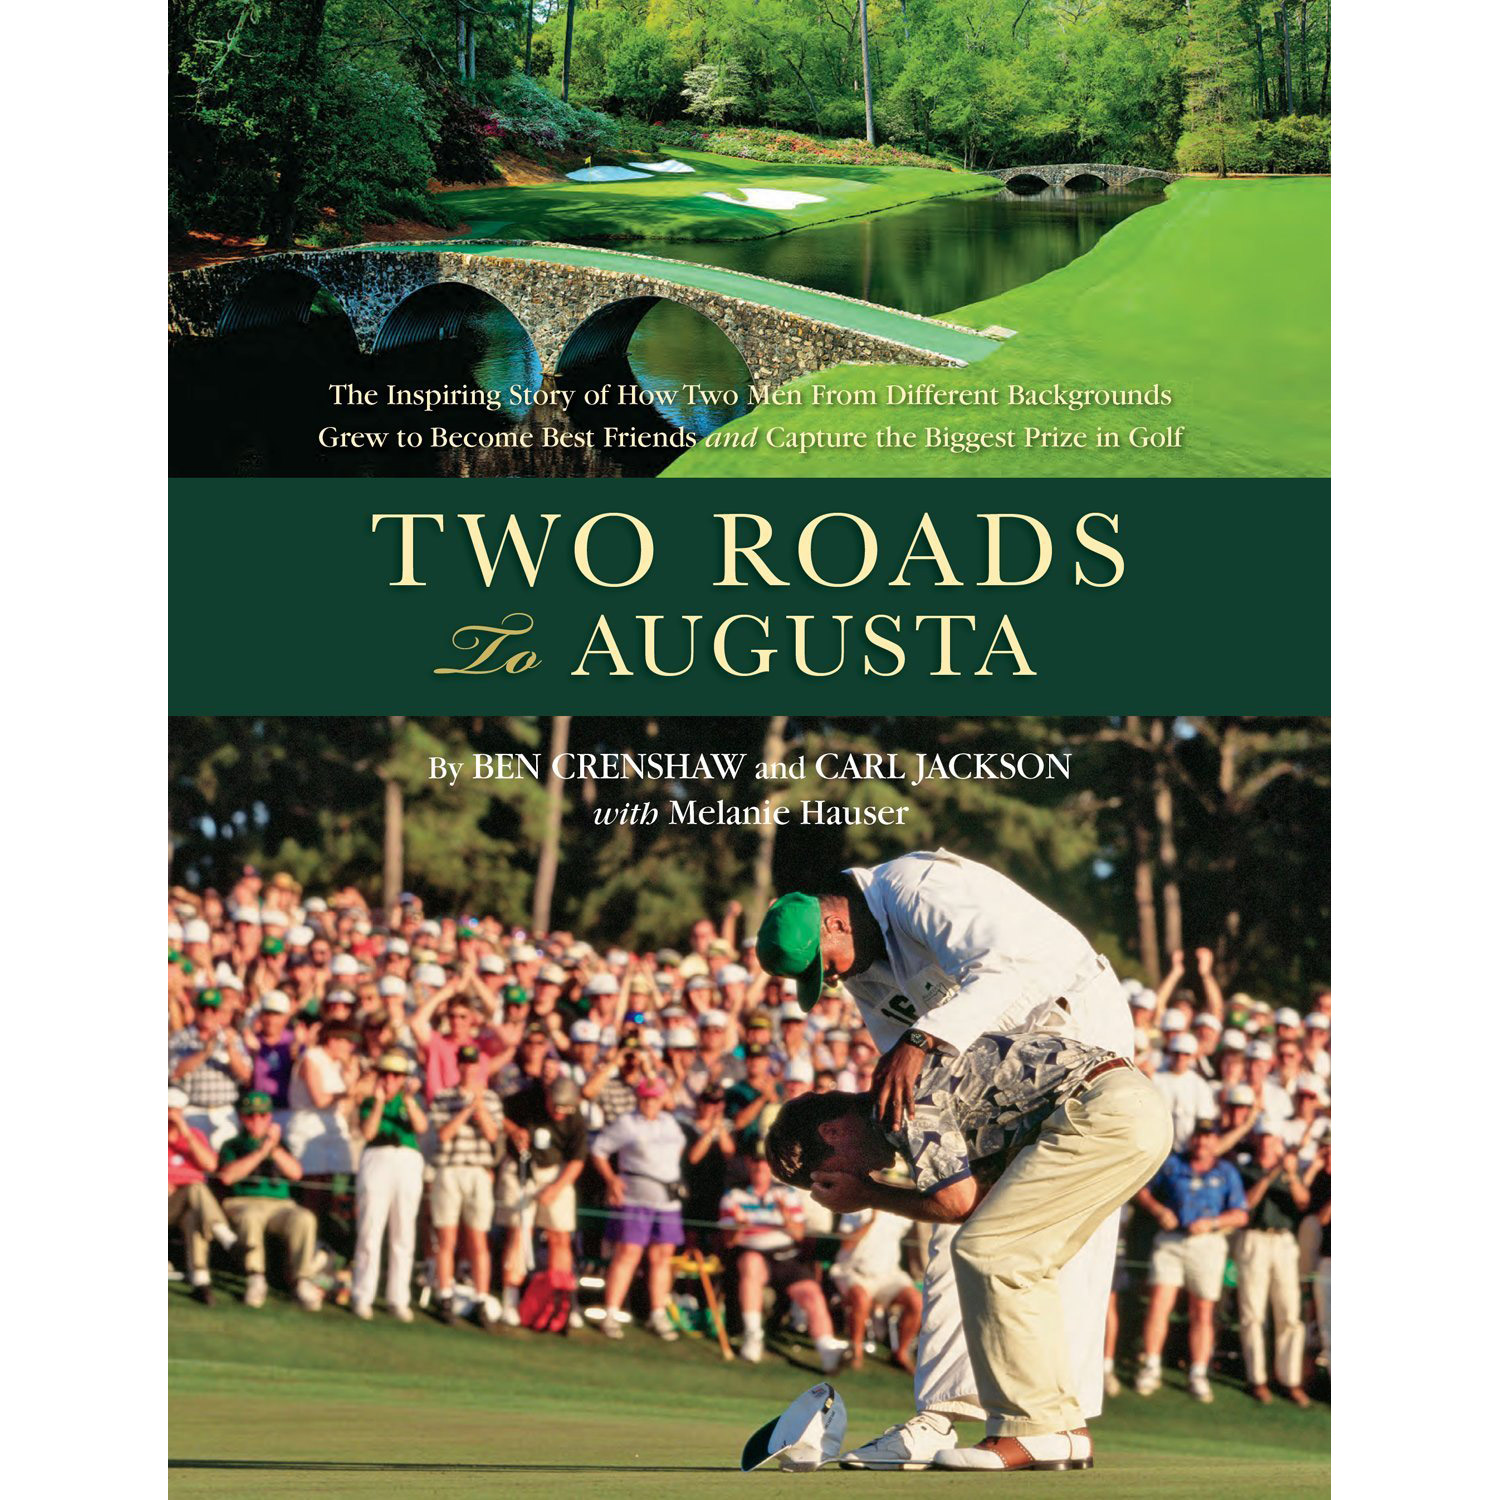 """The cover photo of the hulking Jackson tenderly consoling a victorious, doubled-over Crenshaw at the 1995 Masters just days after the death of Crenshaw's beloved mentor Harvey Penick is one of golf's most memorable; so is the abiding relationship between Gentle Ben and his Augusta caddie. How their paths diverged is a distinctly American kind of story, told as a lushly illustrated dual biography spread out against a backdrop of the game and the cultural canvas of the times. <p><a class=""""standard-button"""" href=""""https://www.amazon.com/gp/product/1888531193/ref=as_li_qf_sp_asin_il_tl?ie=UTF8&tag=golf0527-20&camp=1789&creative=9325&linkCode=as2&creativeASIN=1888531193&linkId=14677b55e0dc4725df3f70427d63e265"""" target=""""_blank"""">Buy It Now</a></p>"""